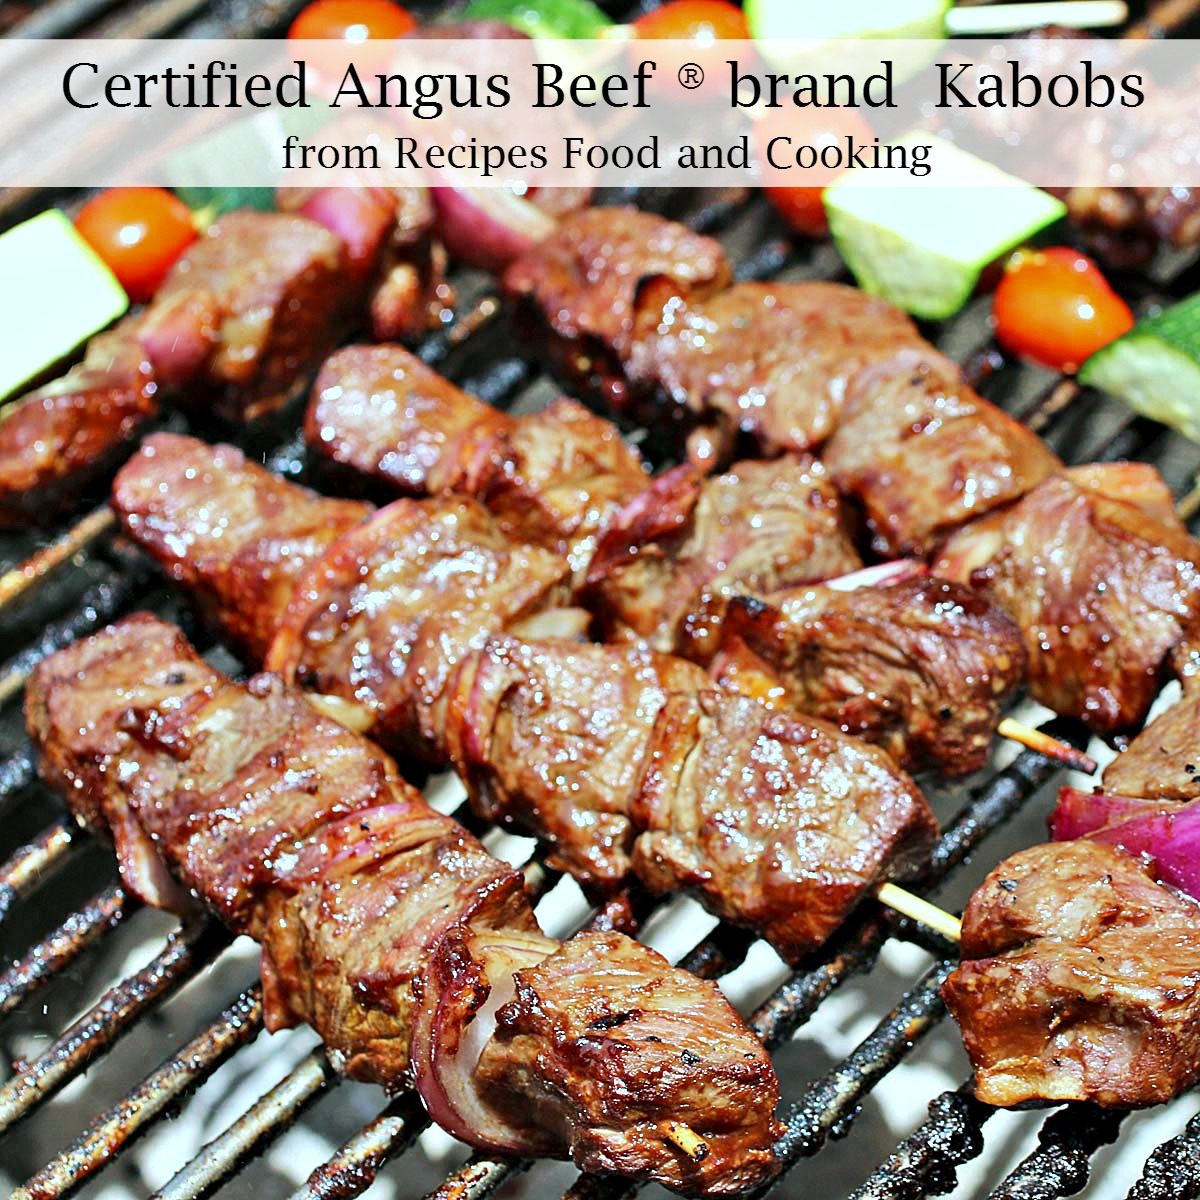 Certified Angus Beef ® brand Kabobs